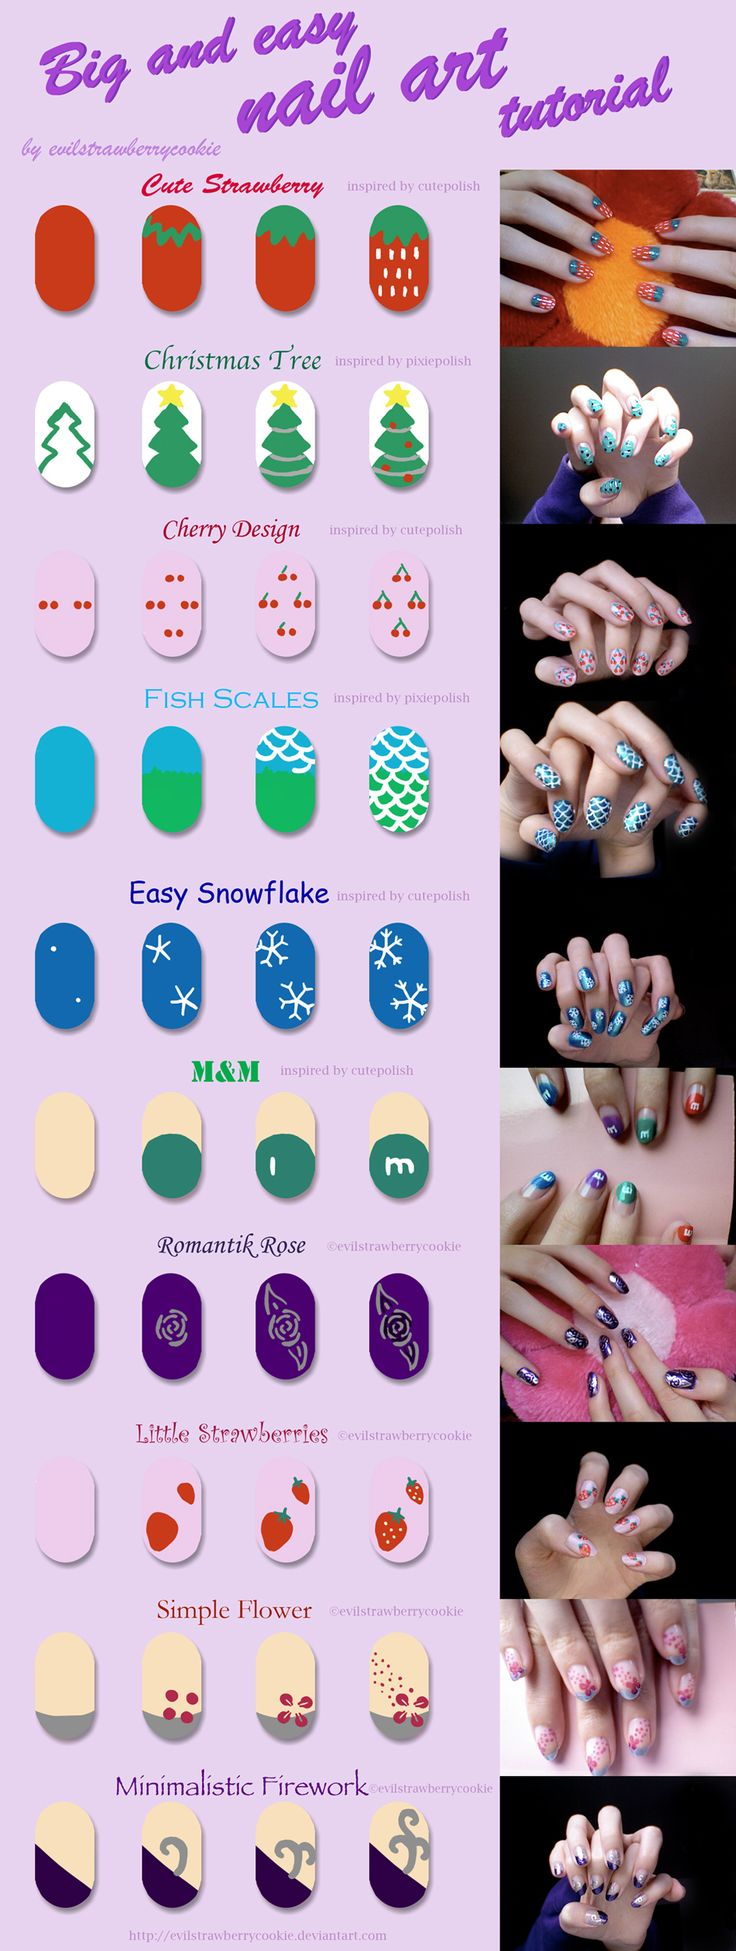 Tutorial of a bunch of simple nail art designs by evilstrawberrycookie from DeviantArt - Big Strawberry, Christmas Tree, Cherries (Cherry), Fish Scales, m, Romantic Rose, Small Strawberry (strawberries), Simple Flower, Minimalistic Firework ~evilstrawberrycookie on deviantART